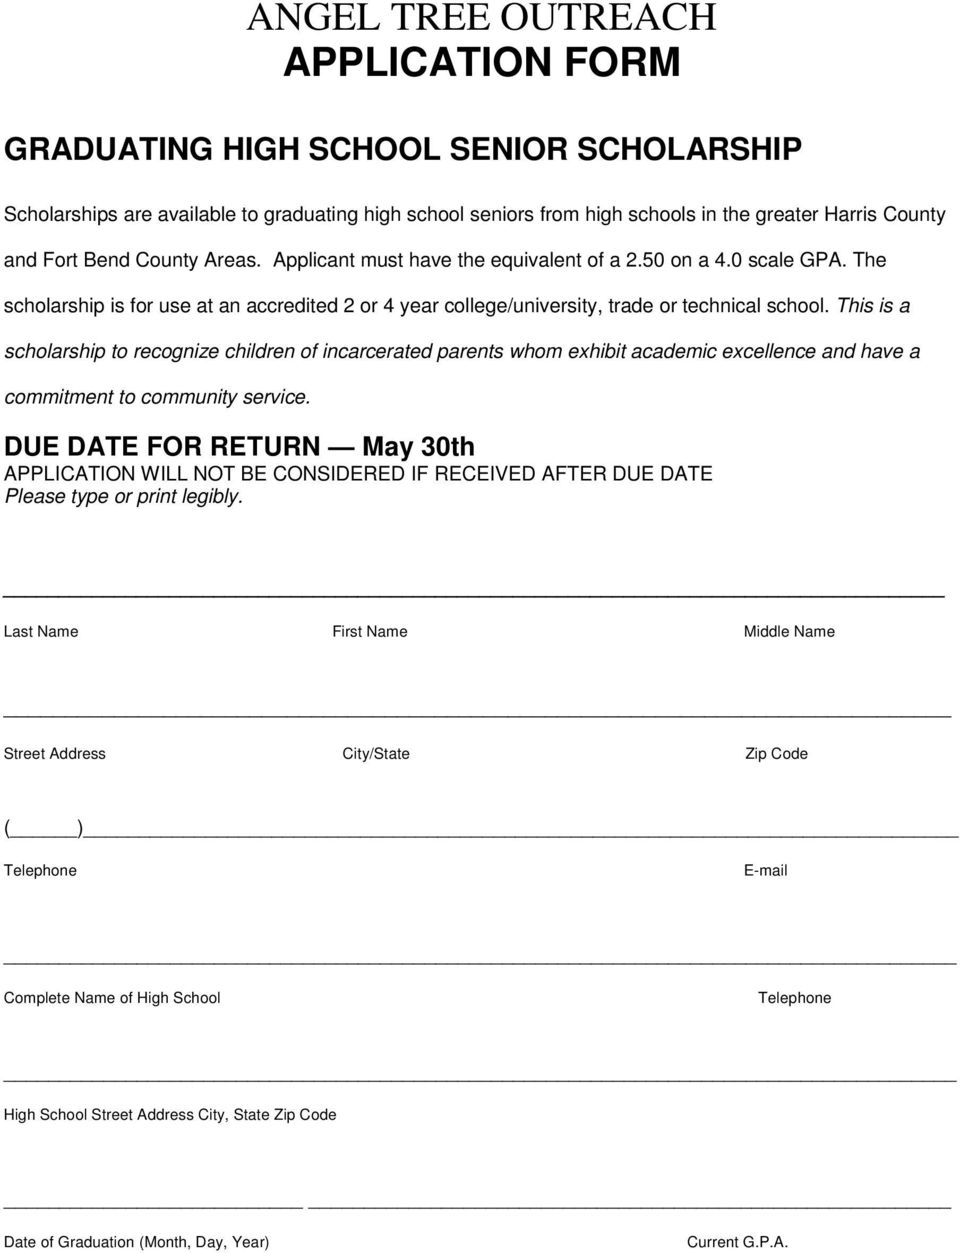 This is a scholarship to recognize children of incarcerated parents whom exhibit academic excellence and have a commitment to community service.